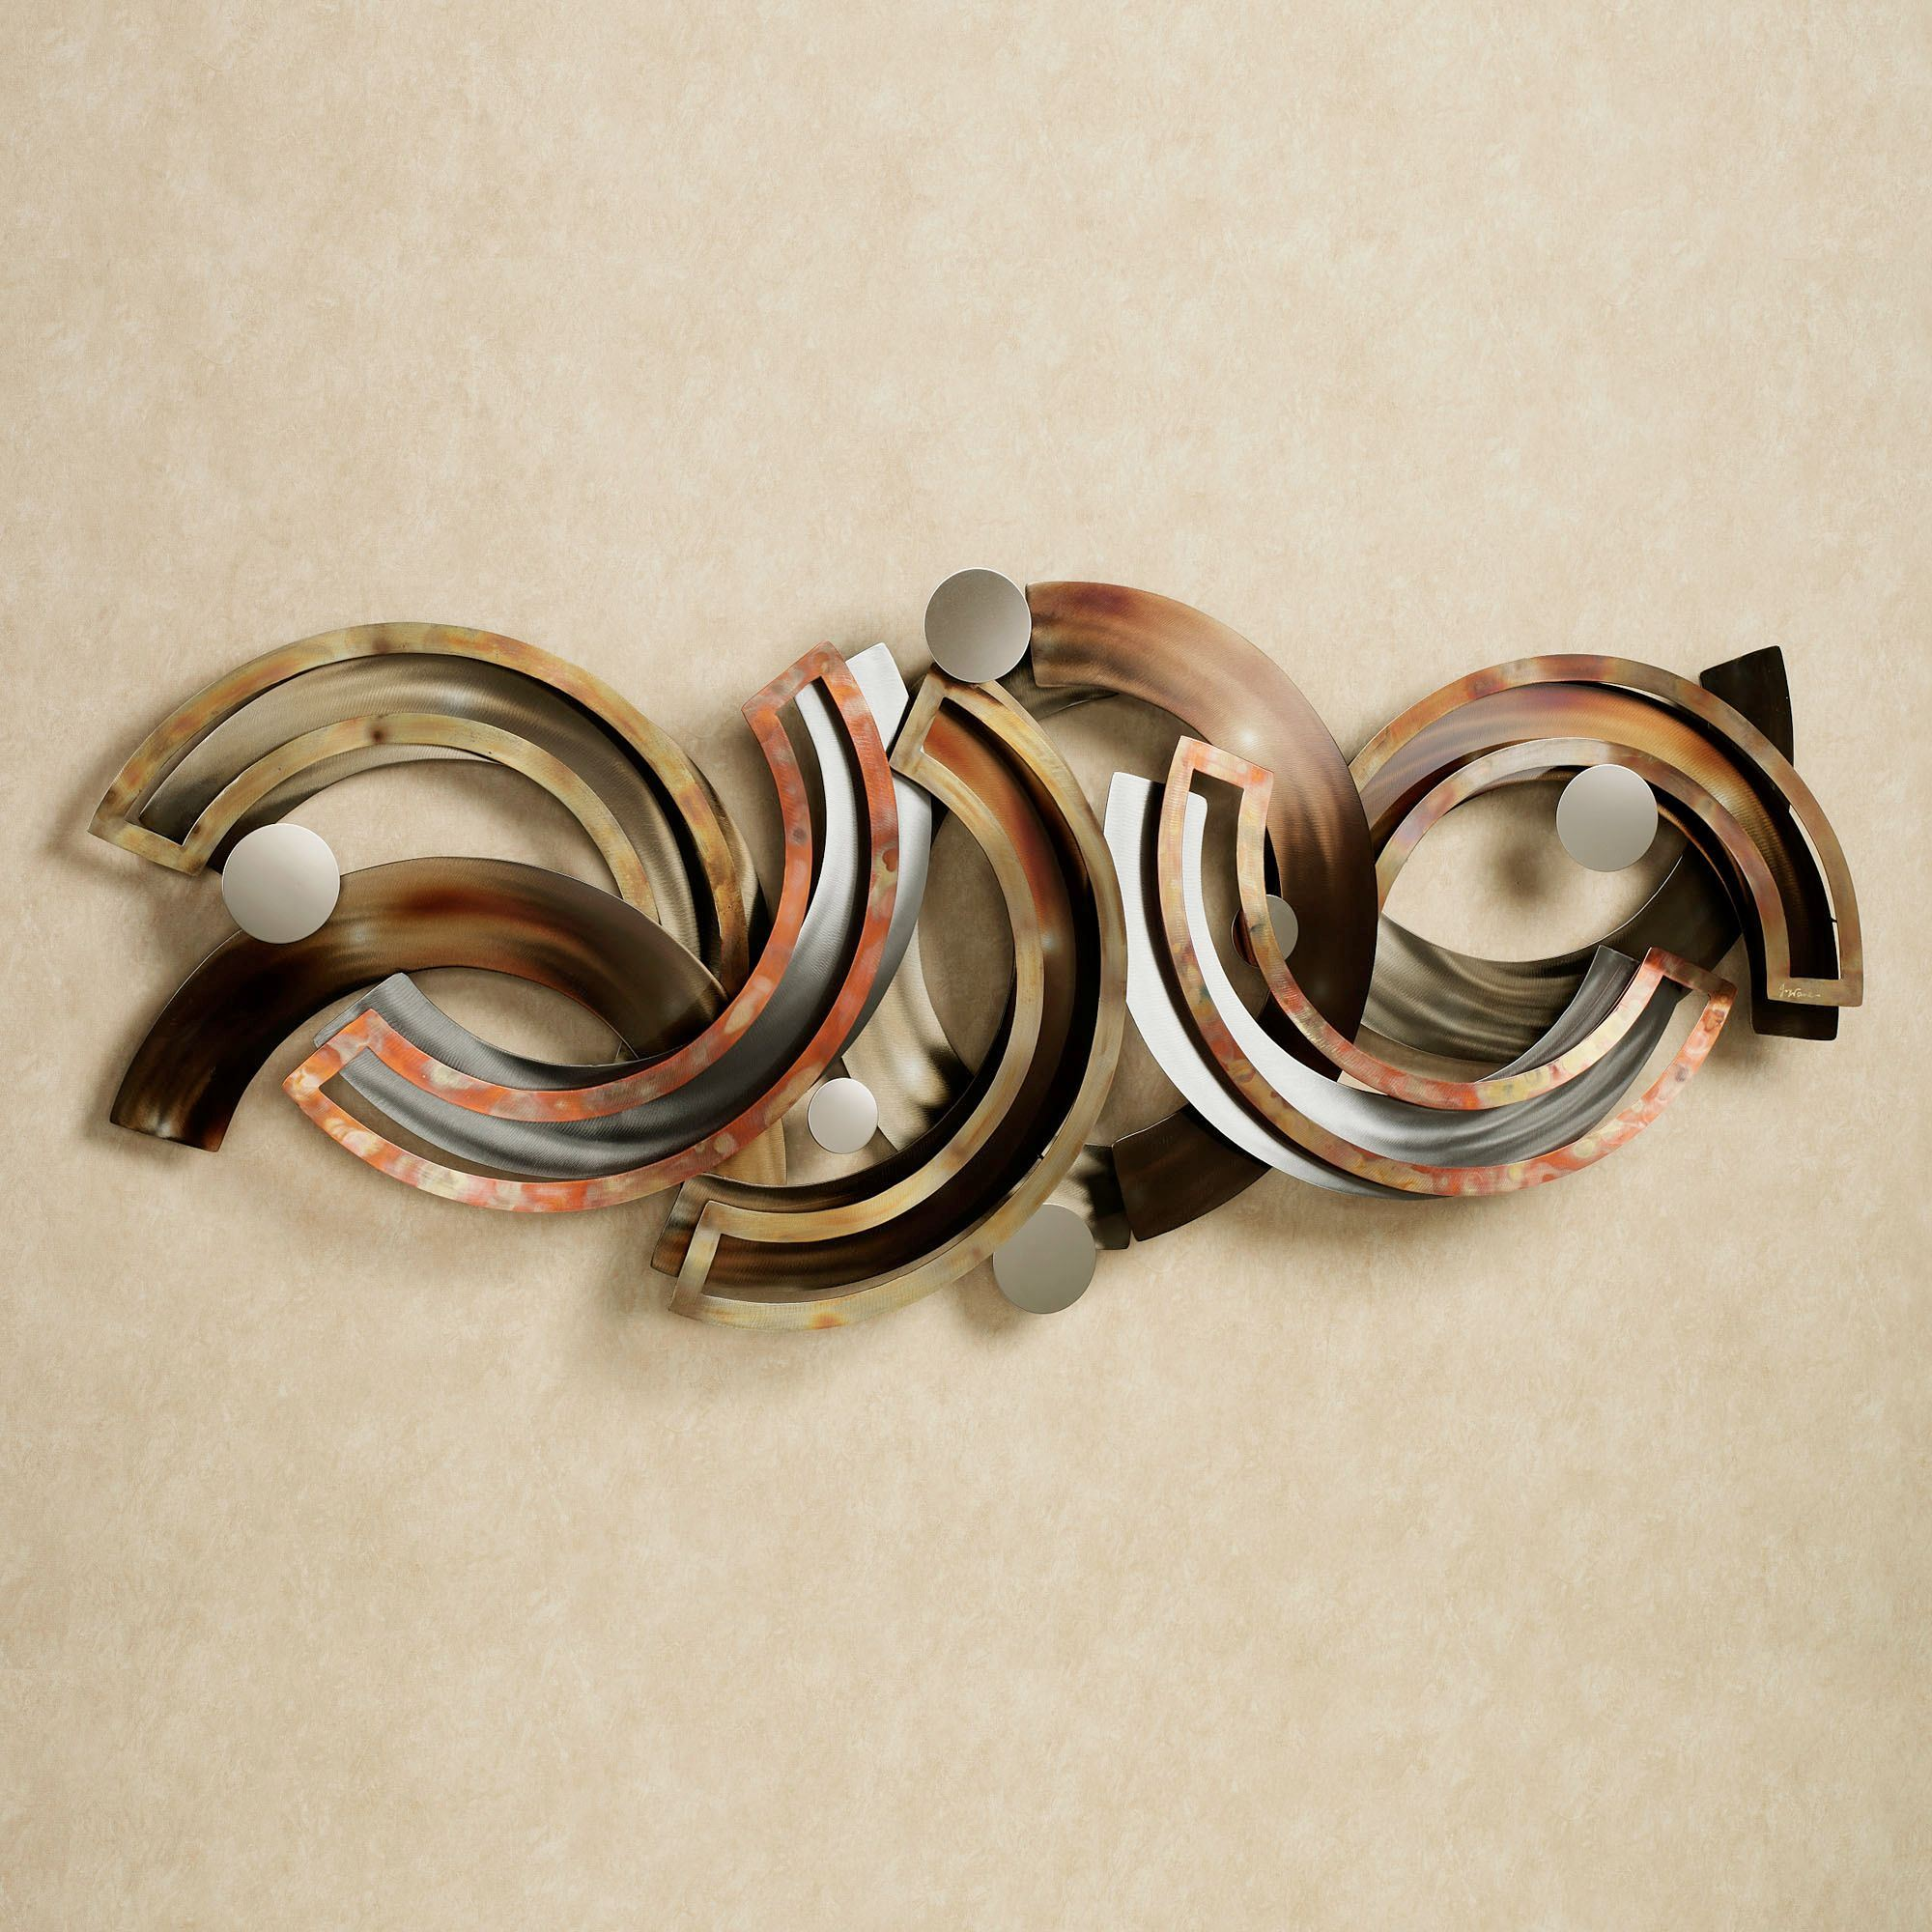 Rejoice abstract metal wall sculpture by jasonw studios for Contemporary decorative accessories